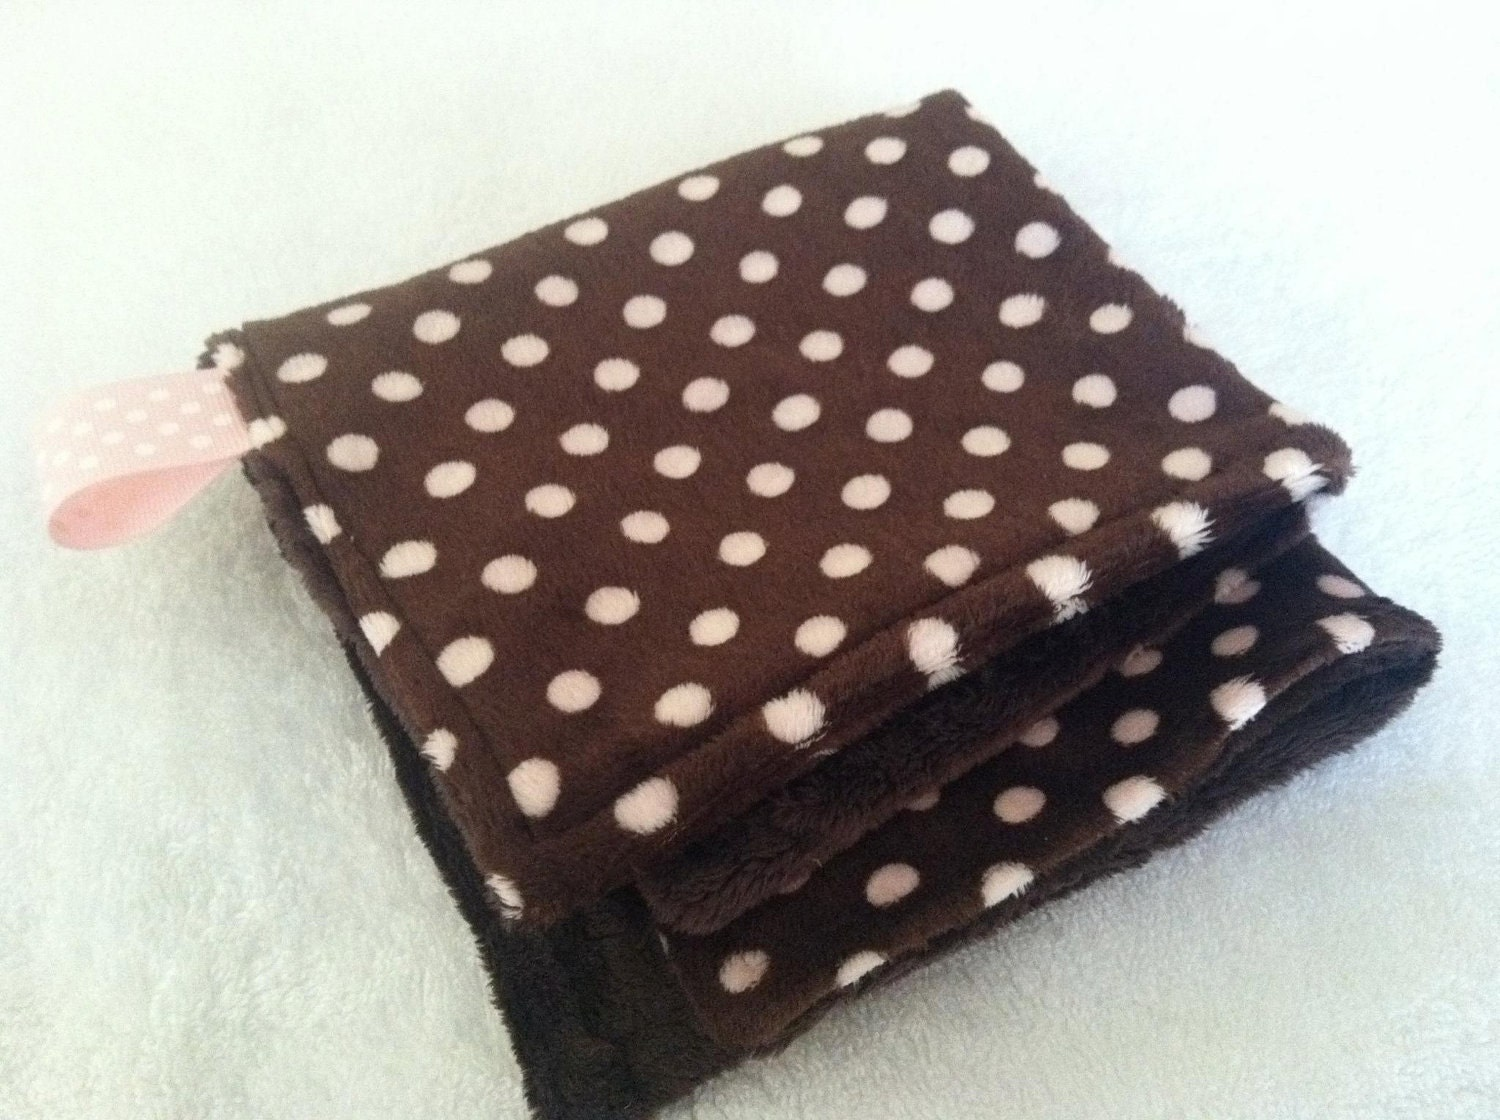 CLEARING STOCK SALE Pink and Brown Minky Dots Tiny Little Lovey Security Blanket Woobie ready to ship